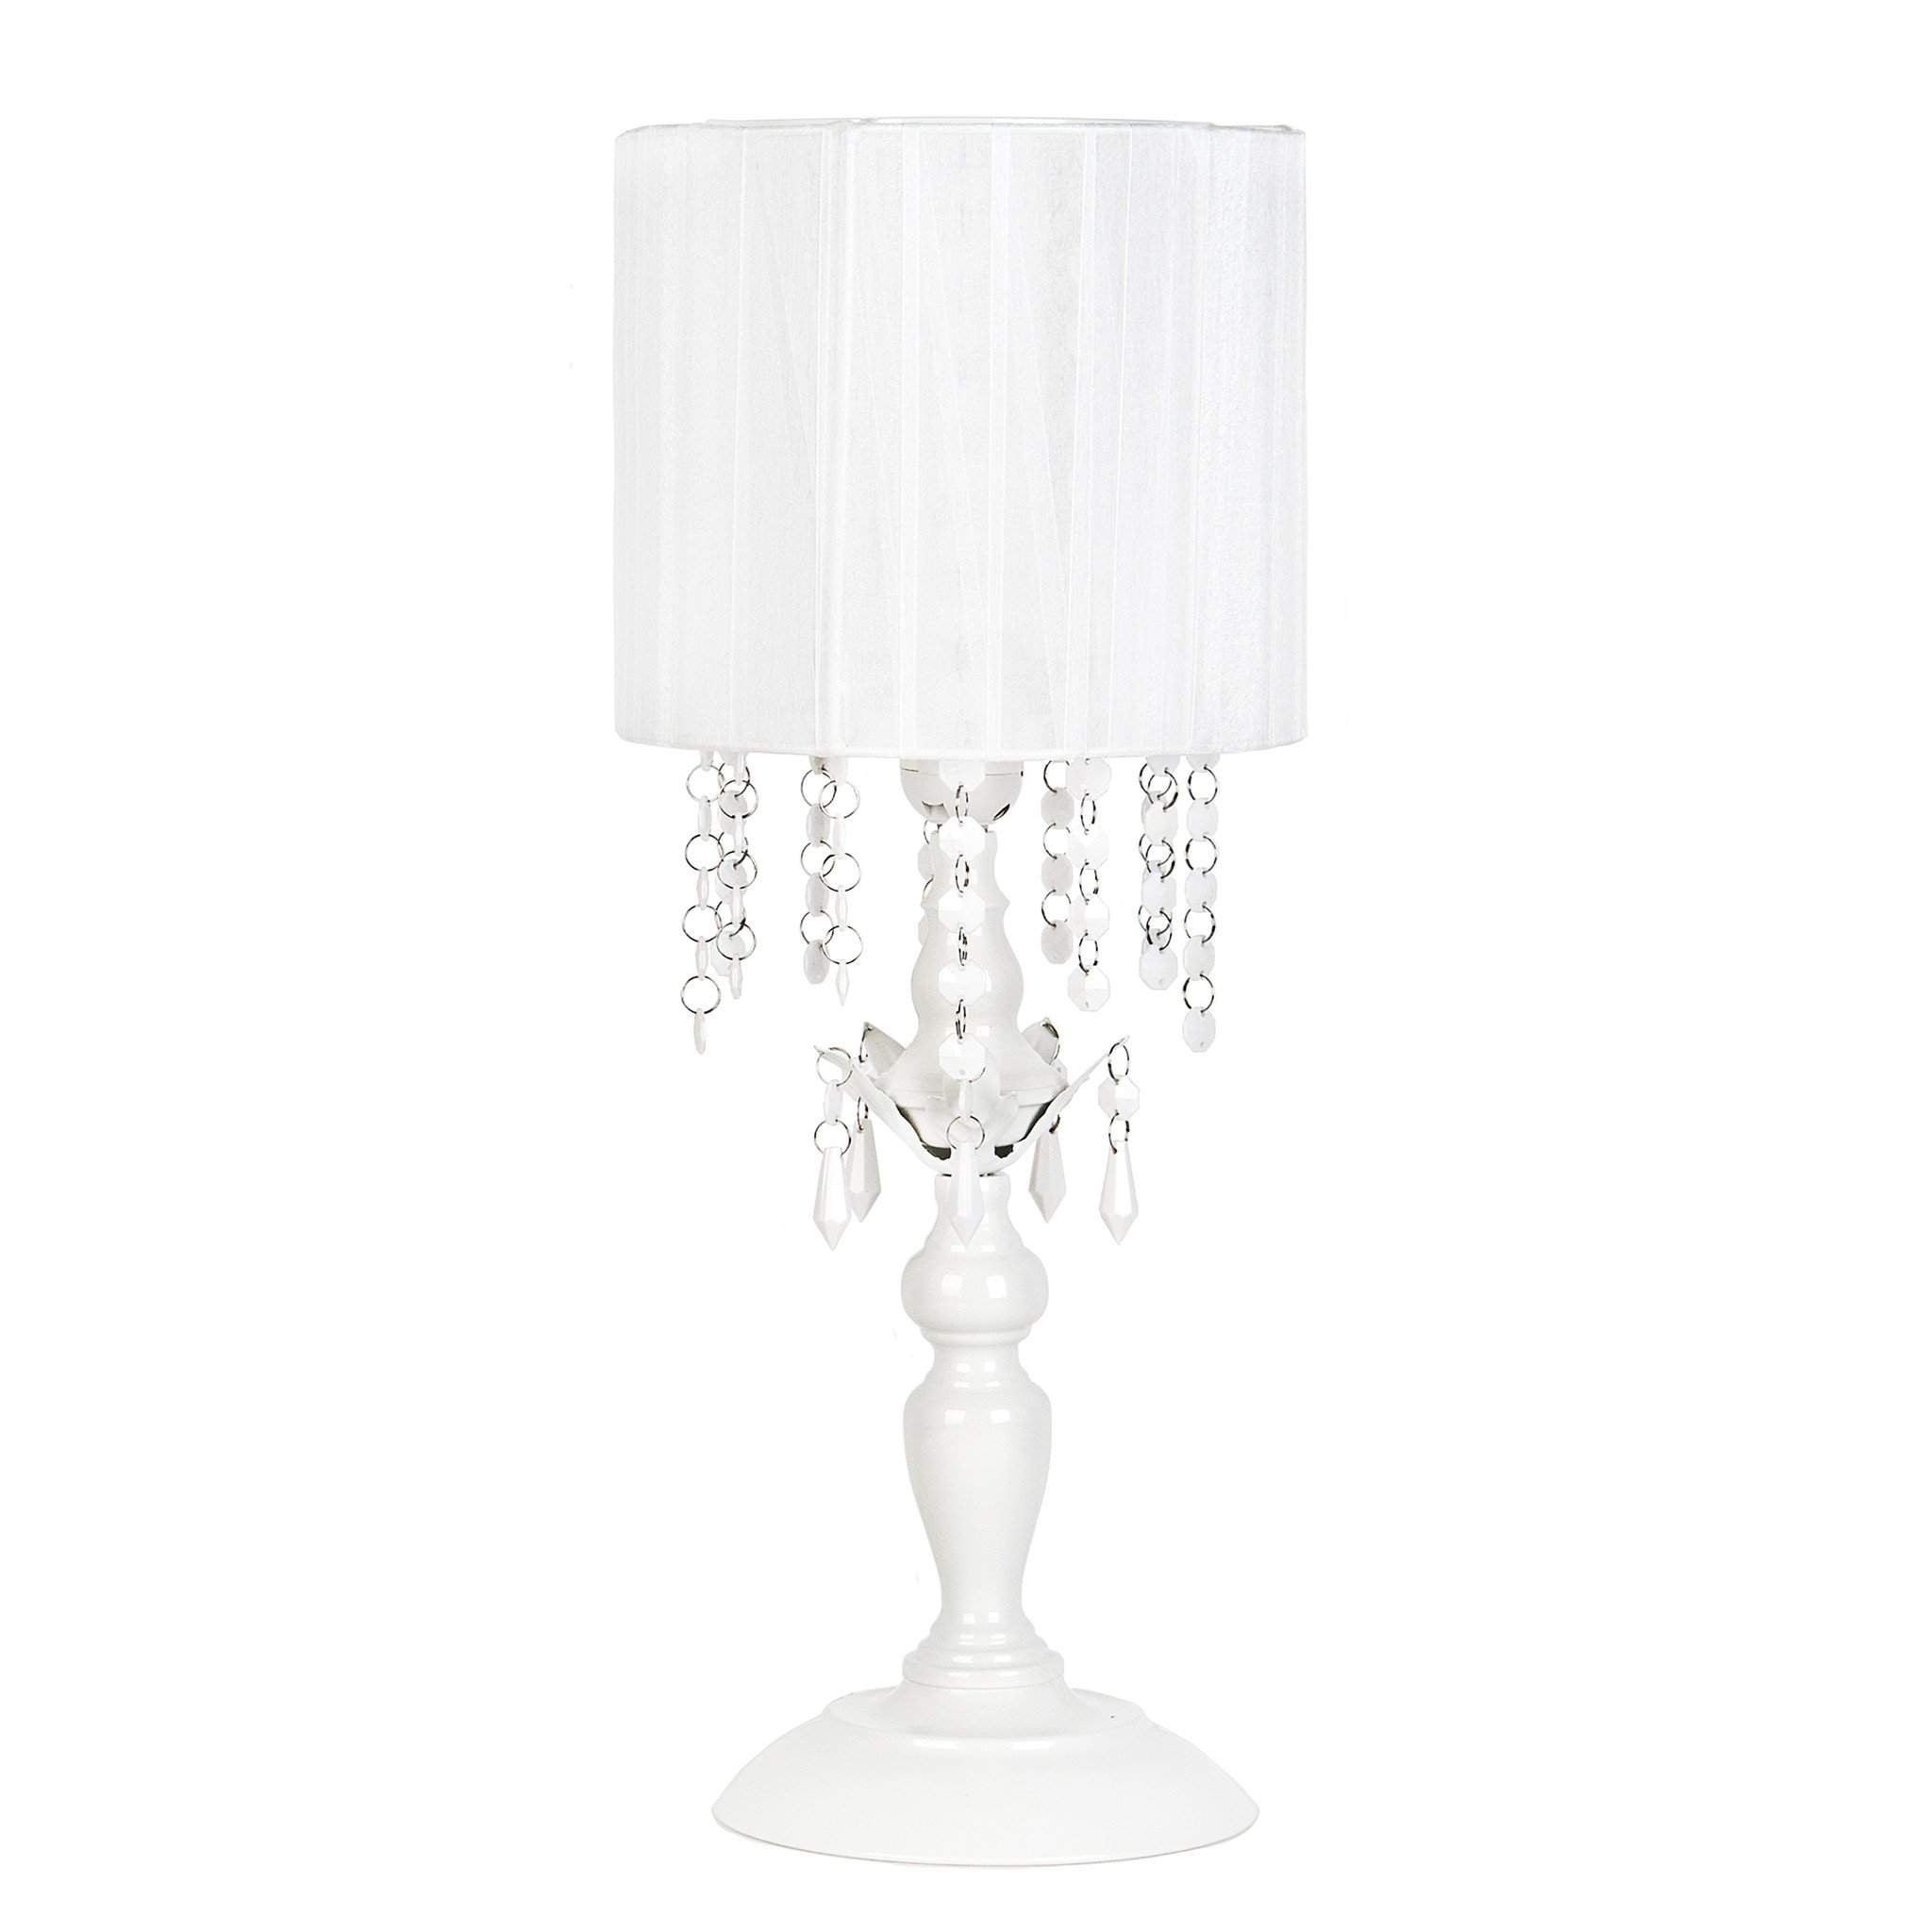 personal free drawing silver use in for chandelier at tadpoles getdrawings black com light elstead amarilli